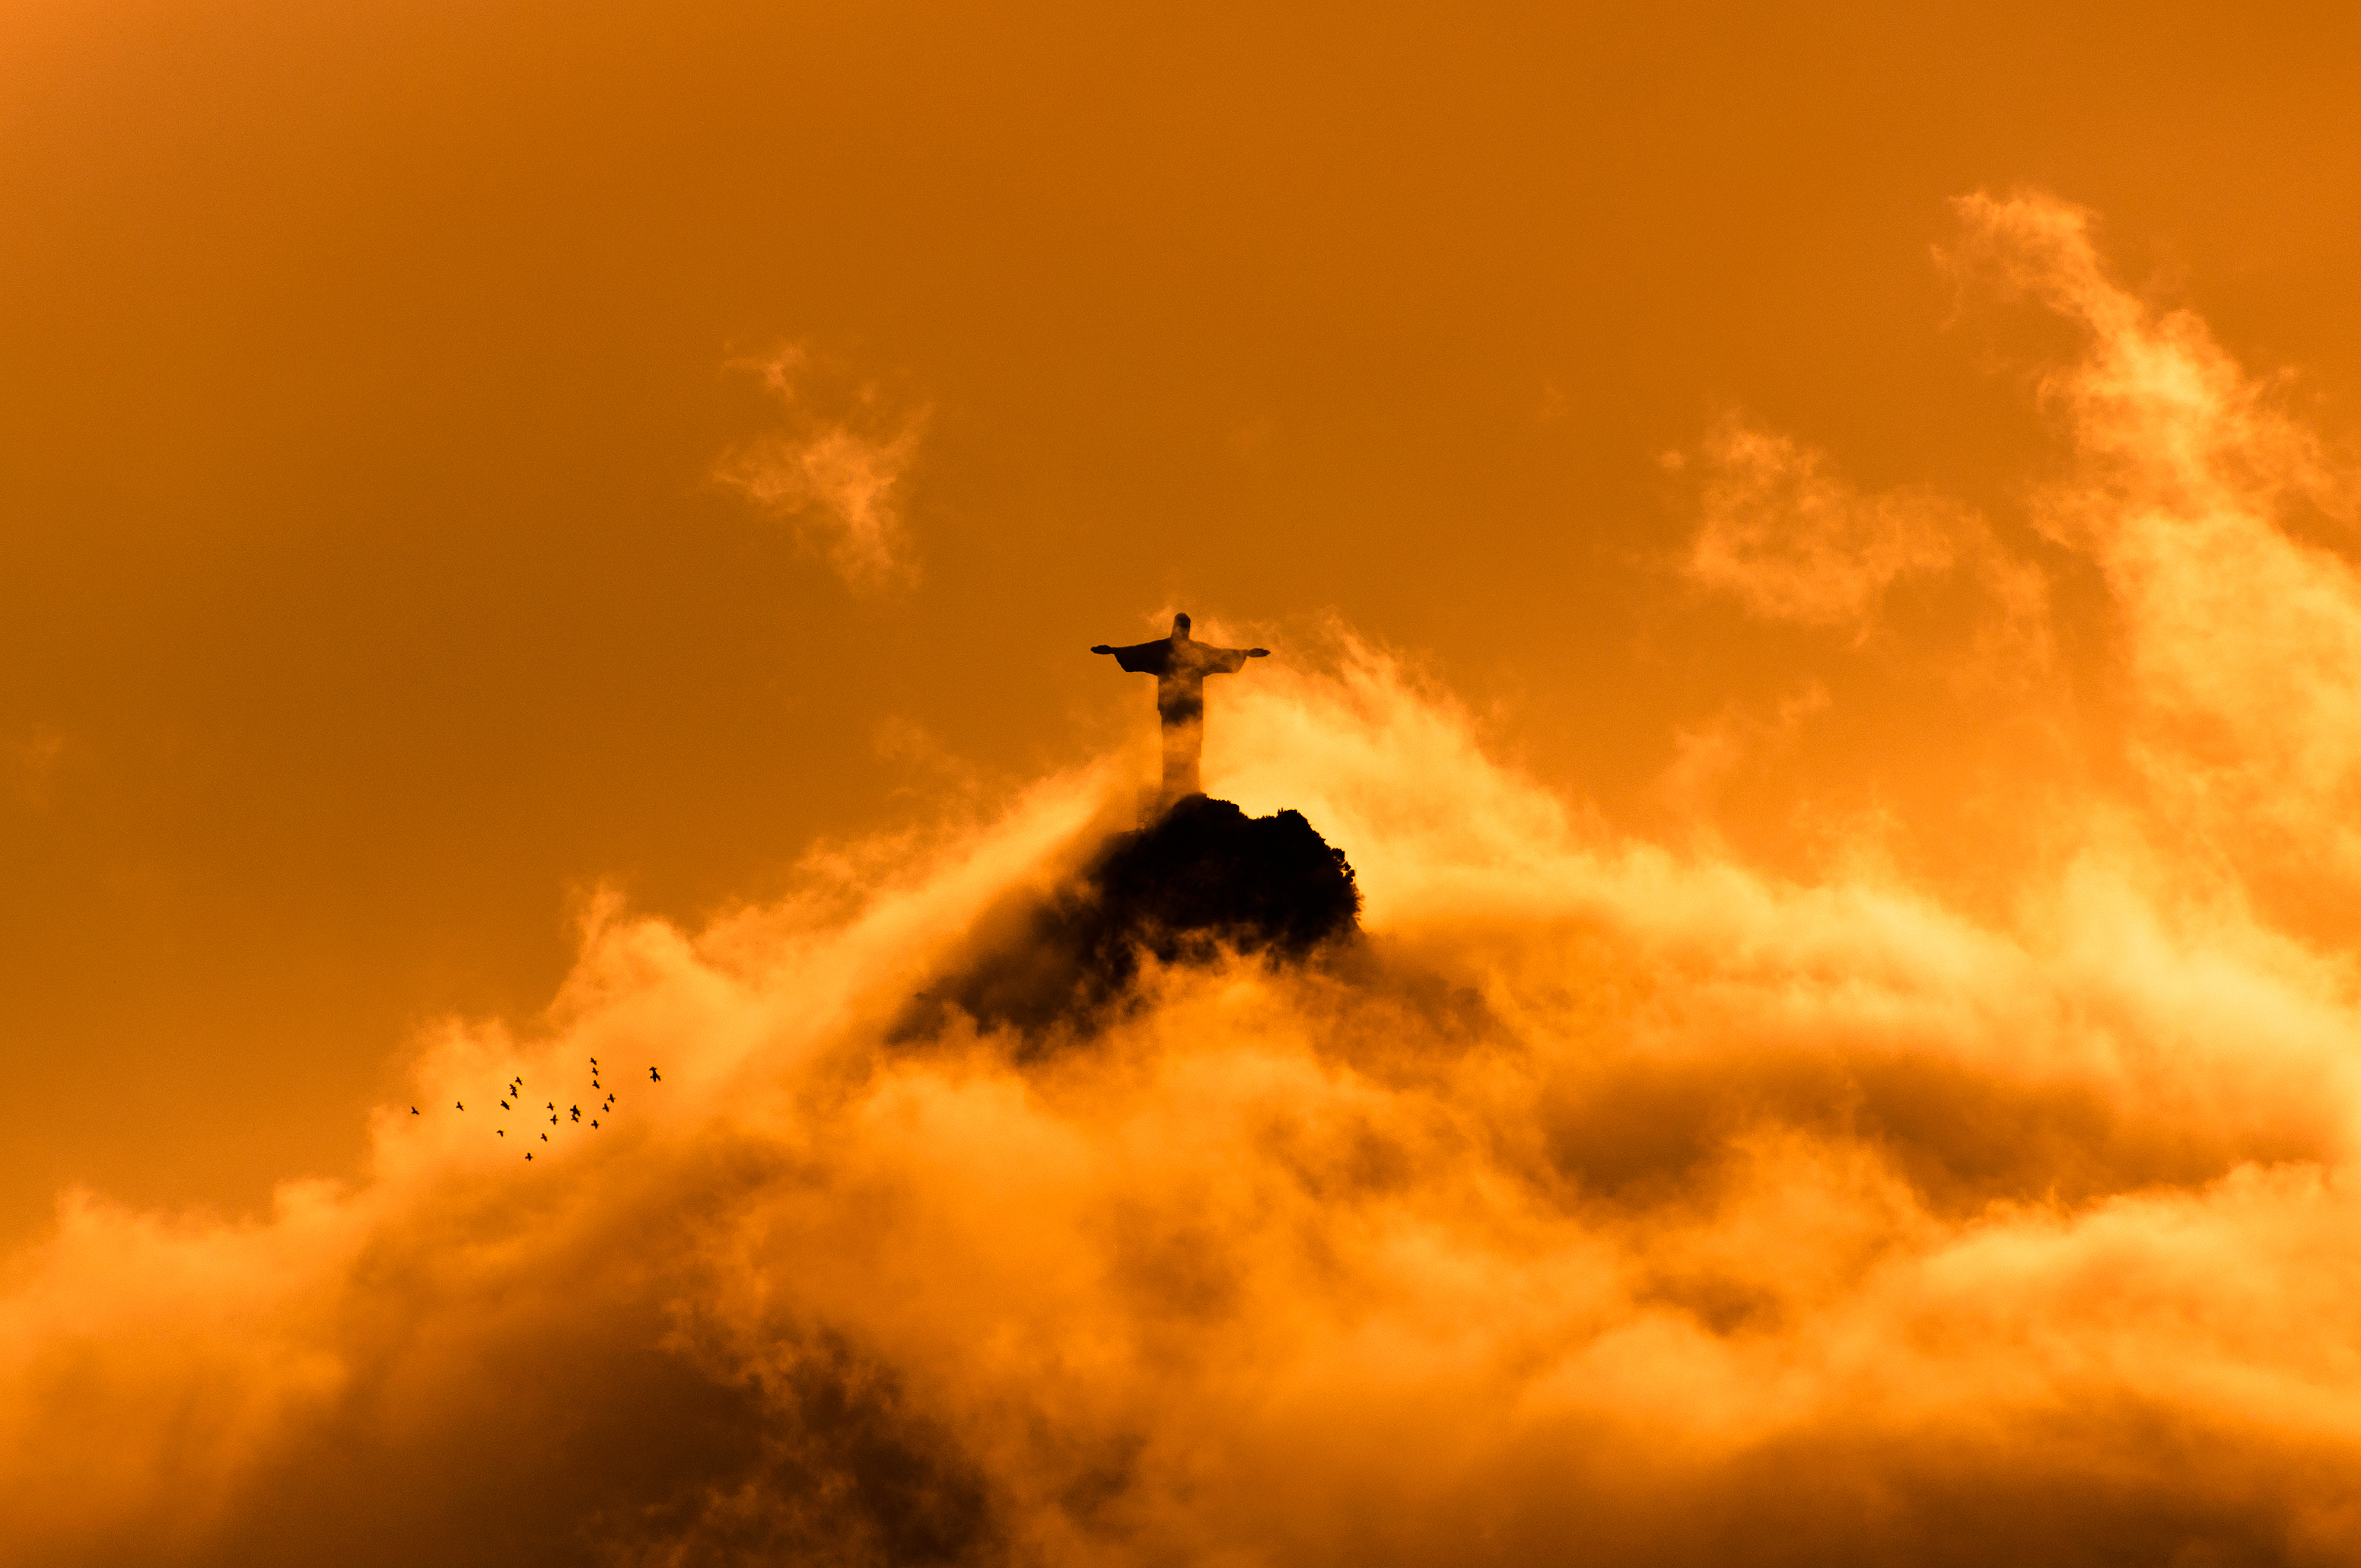 File:Jesus in Clouds by Sunset 2.jpg - Wikimedia Commons